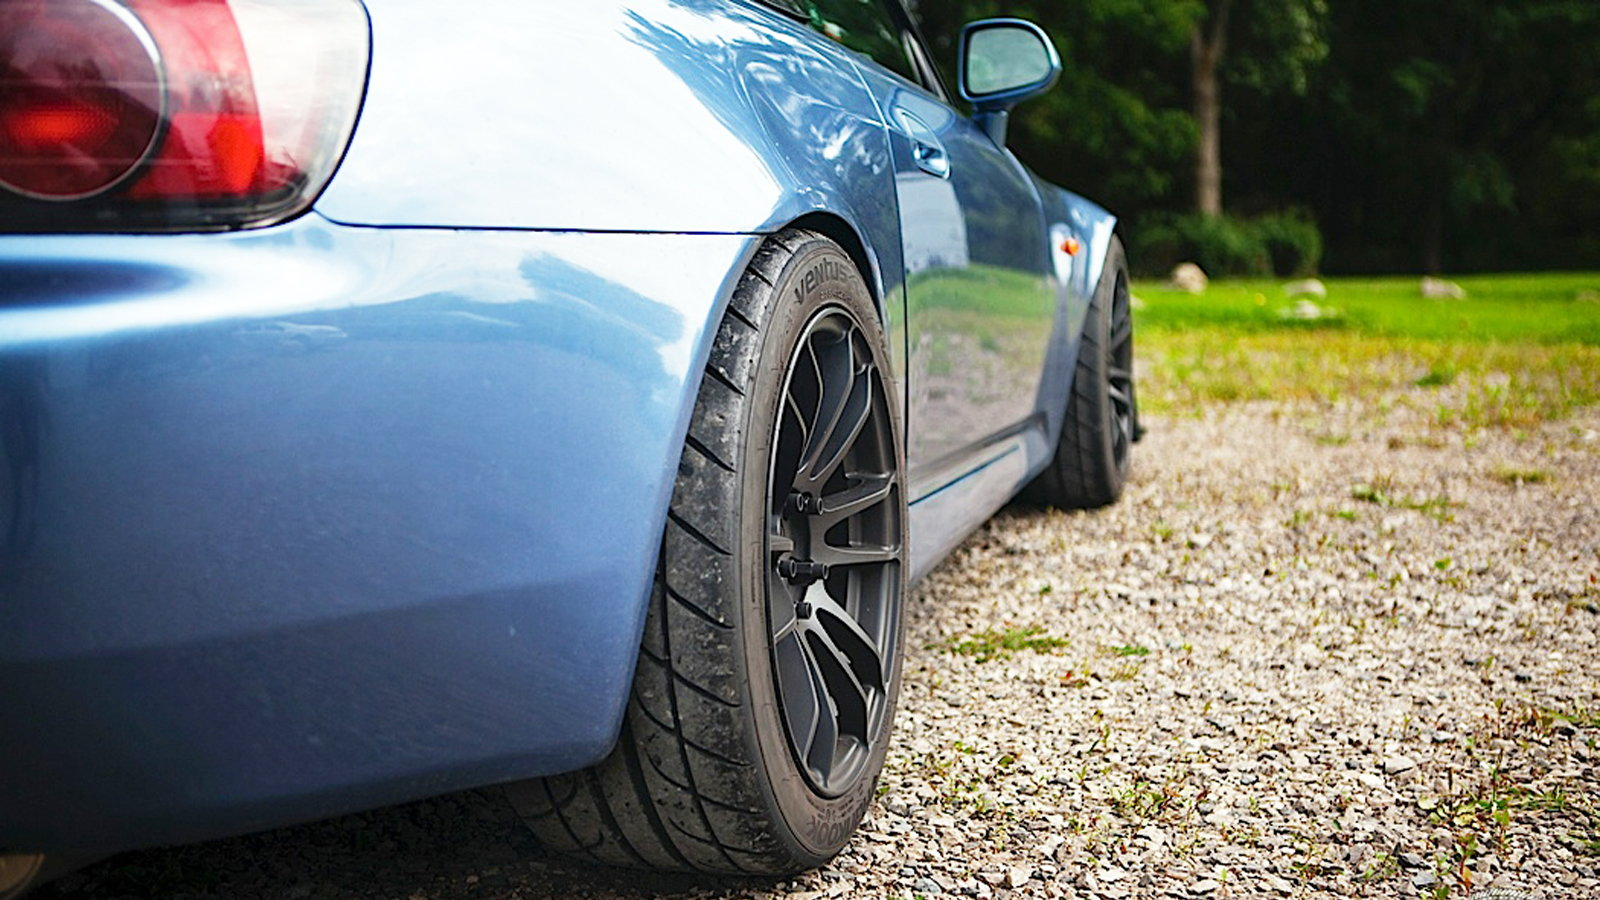 S2000, Wheels, Tires